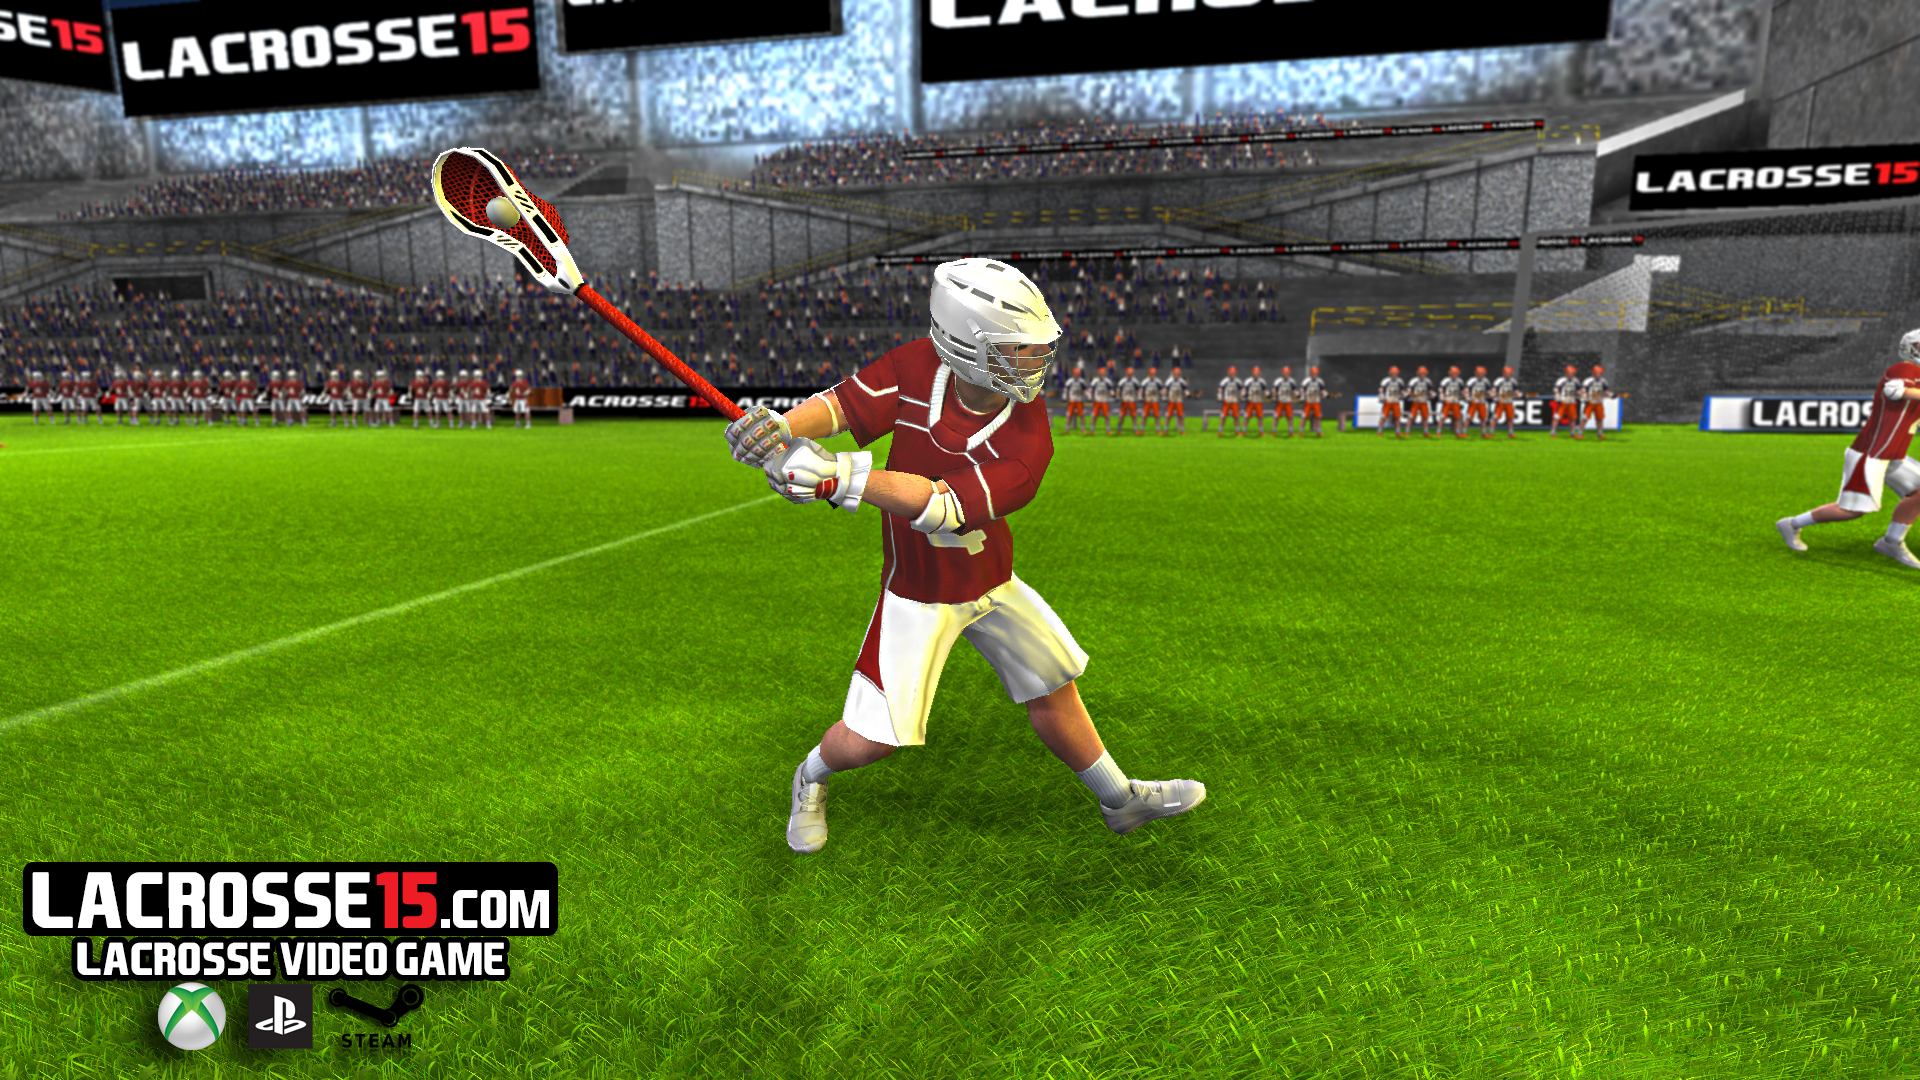 lacrosse wallpapers high quality download free